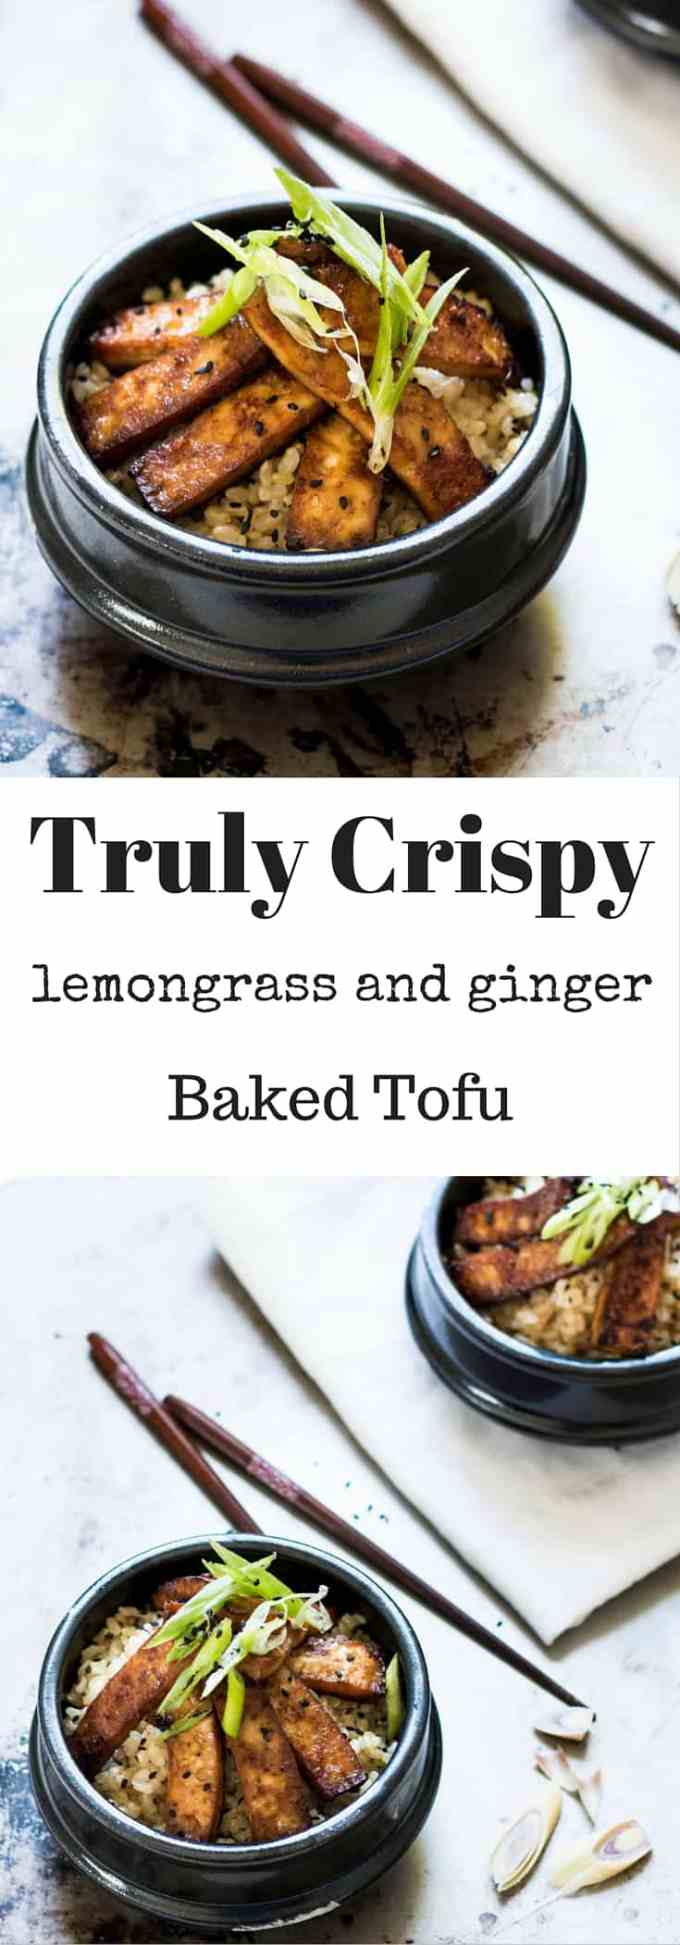 A truly easy way to make firm and crispy Baked Lemongrass and Ginger Tofu. Baked and not fried, for a delicious yet healthy tofu experience.